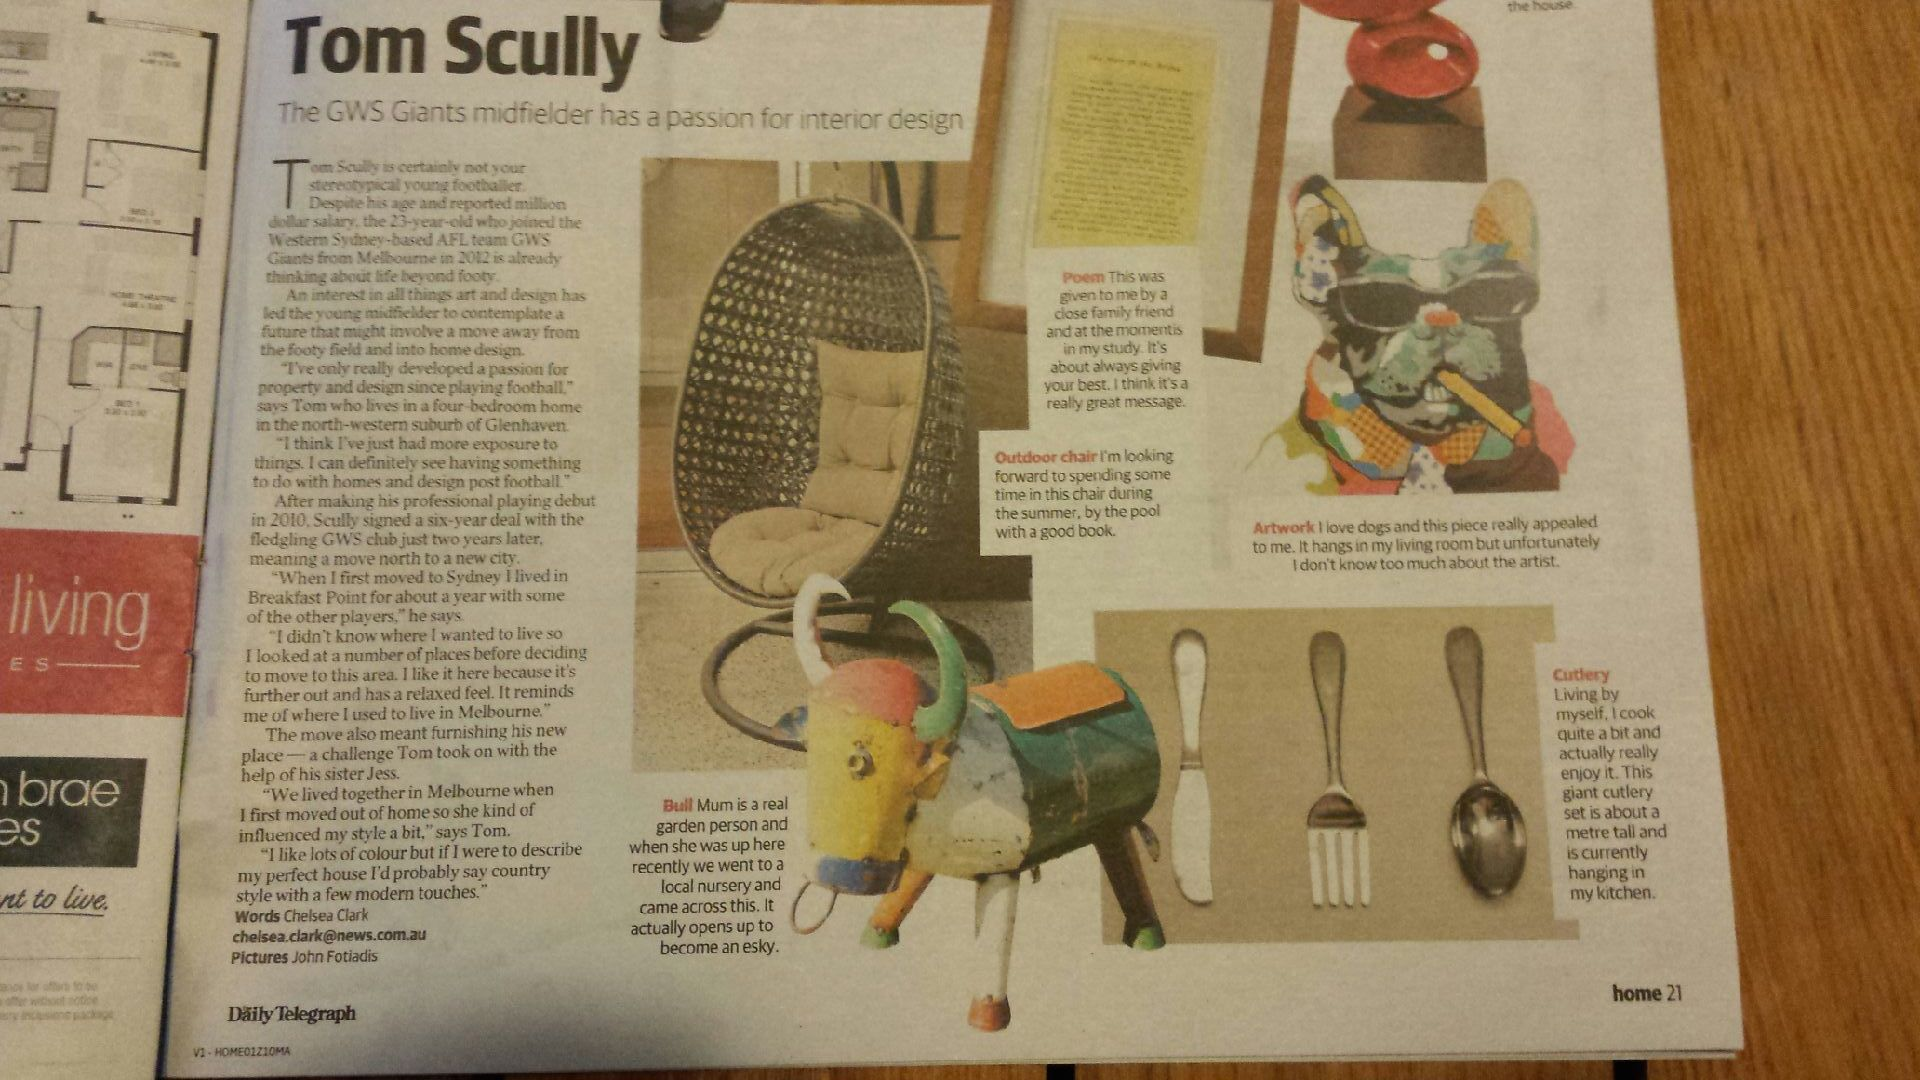 Daily Telegraph 29.08.14 – Tom Scully and his Mum love our Esky!